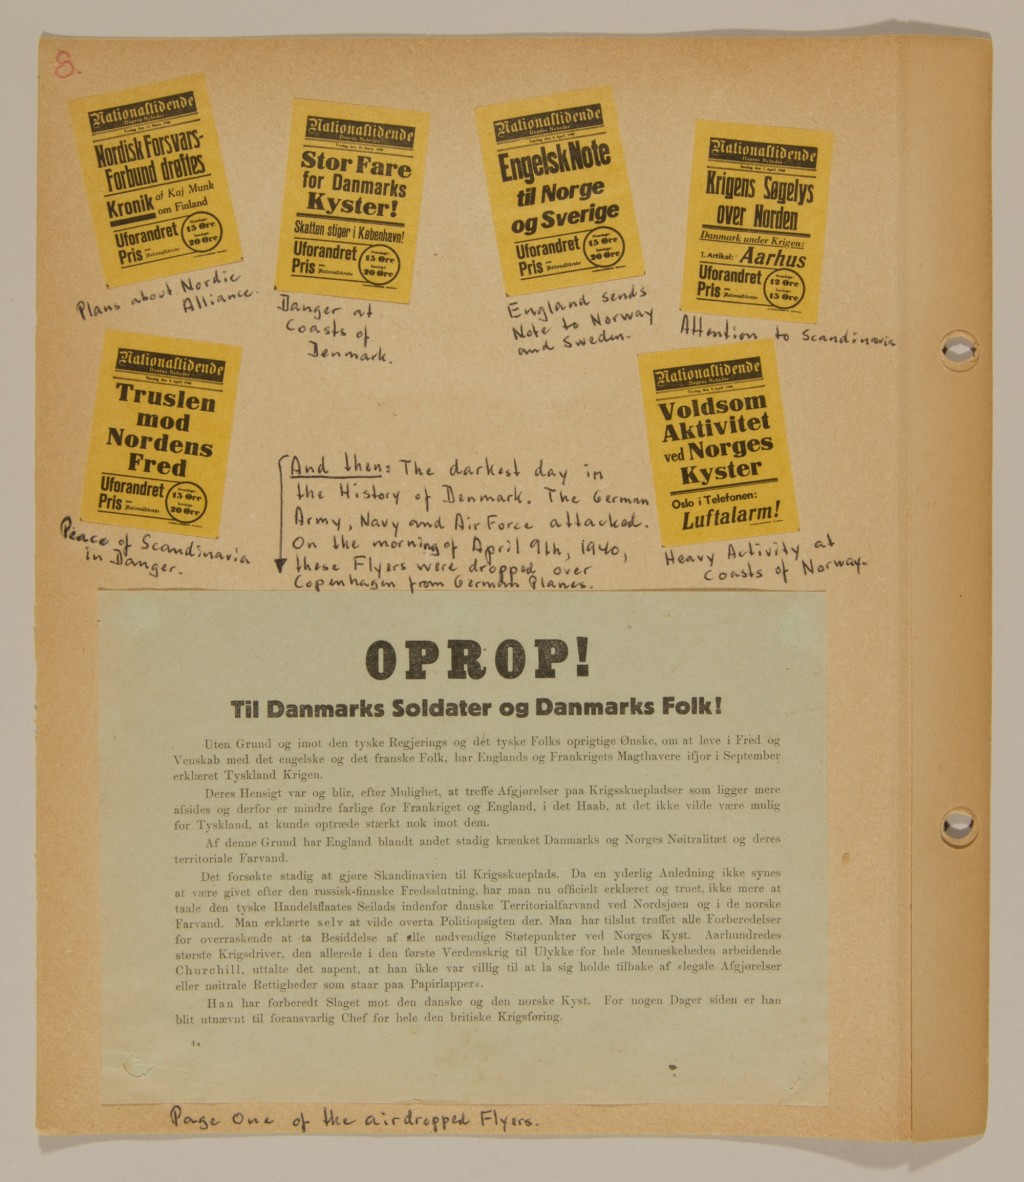 Page from volume 1 of a set of scrapbooks documenting the German occupation of Denmark [LCID: 2016c6o6]